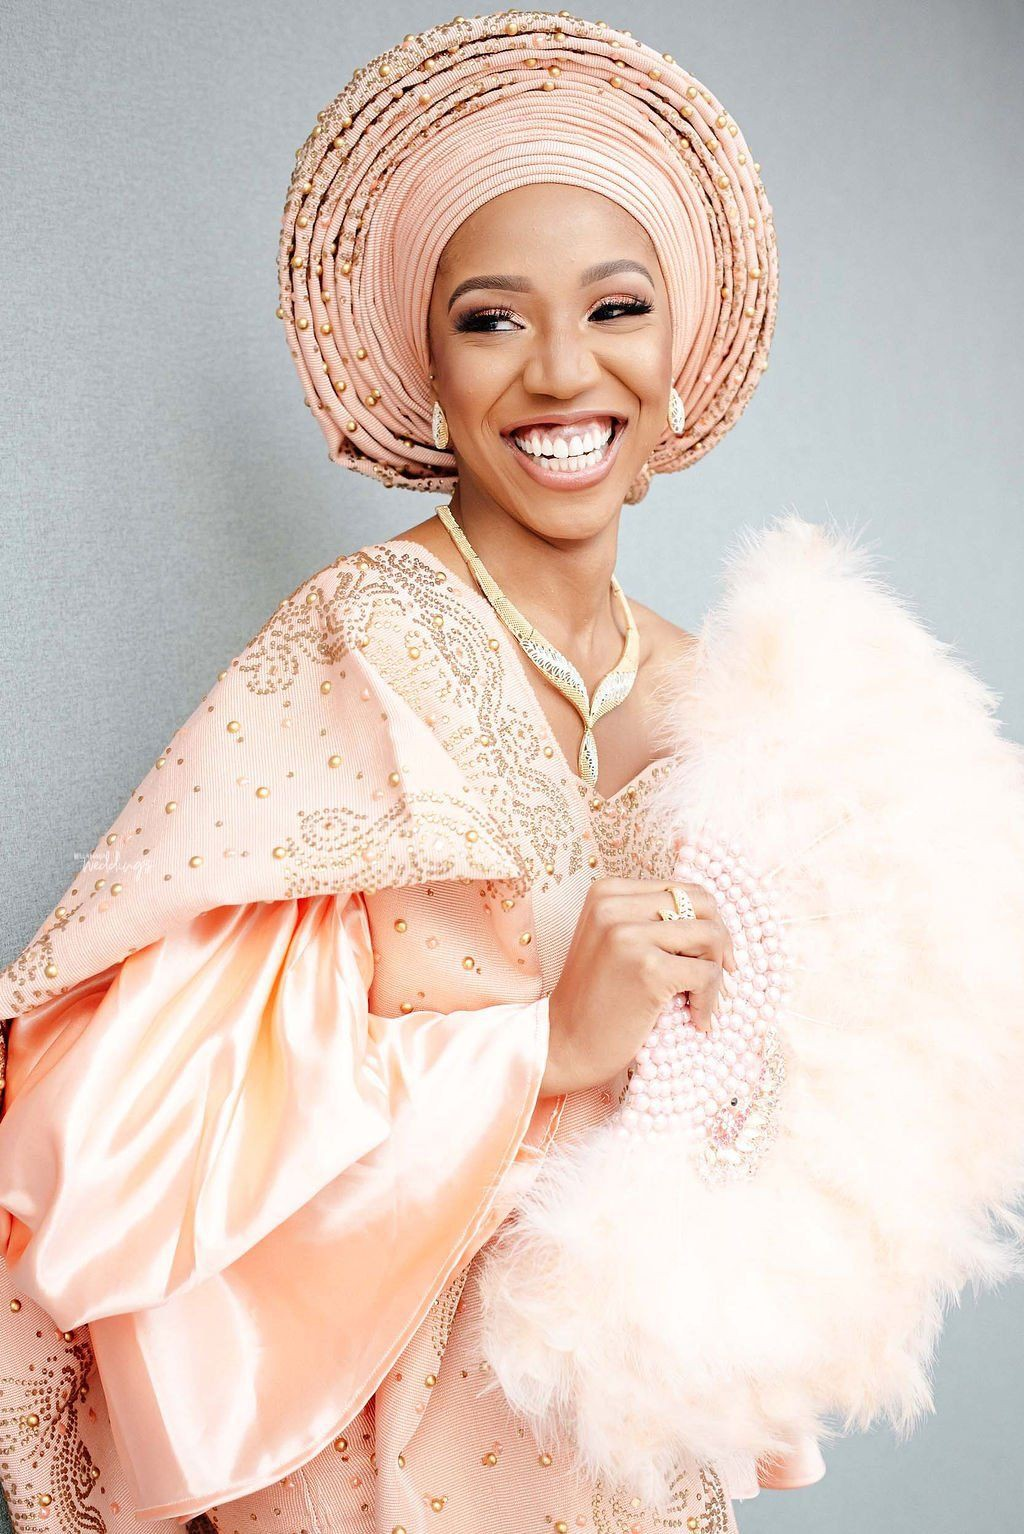 Chilling ideas fashion model, Aso ebi